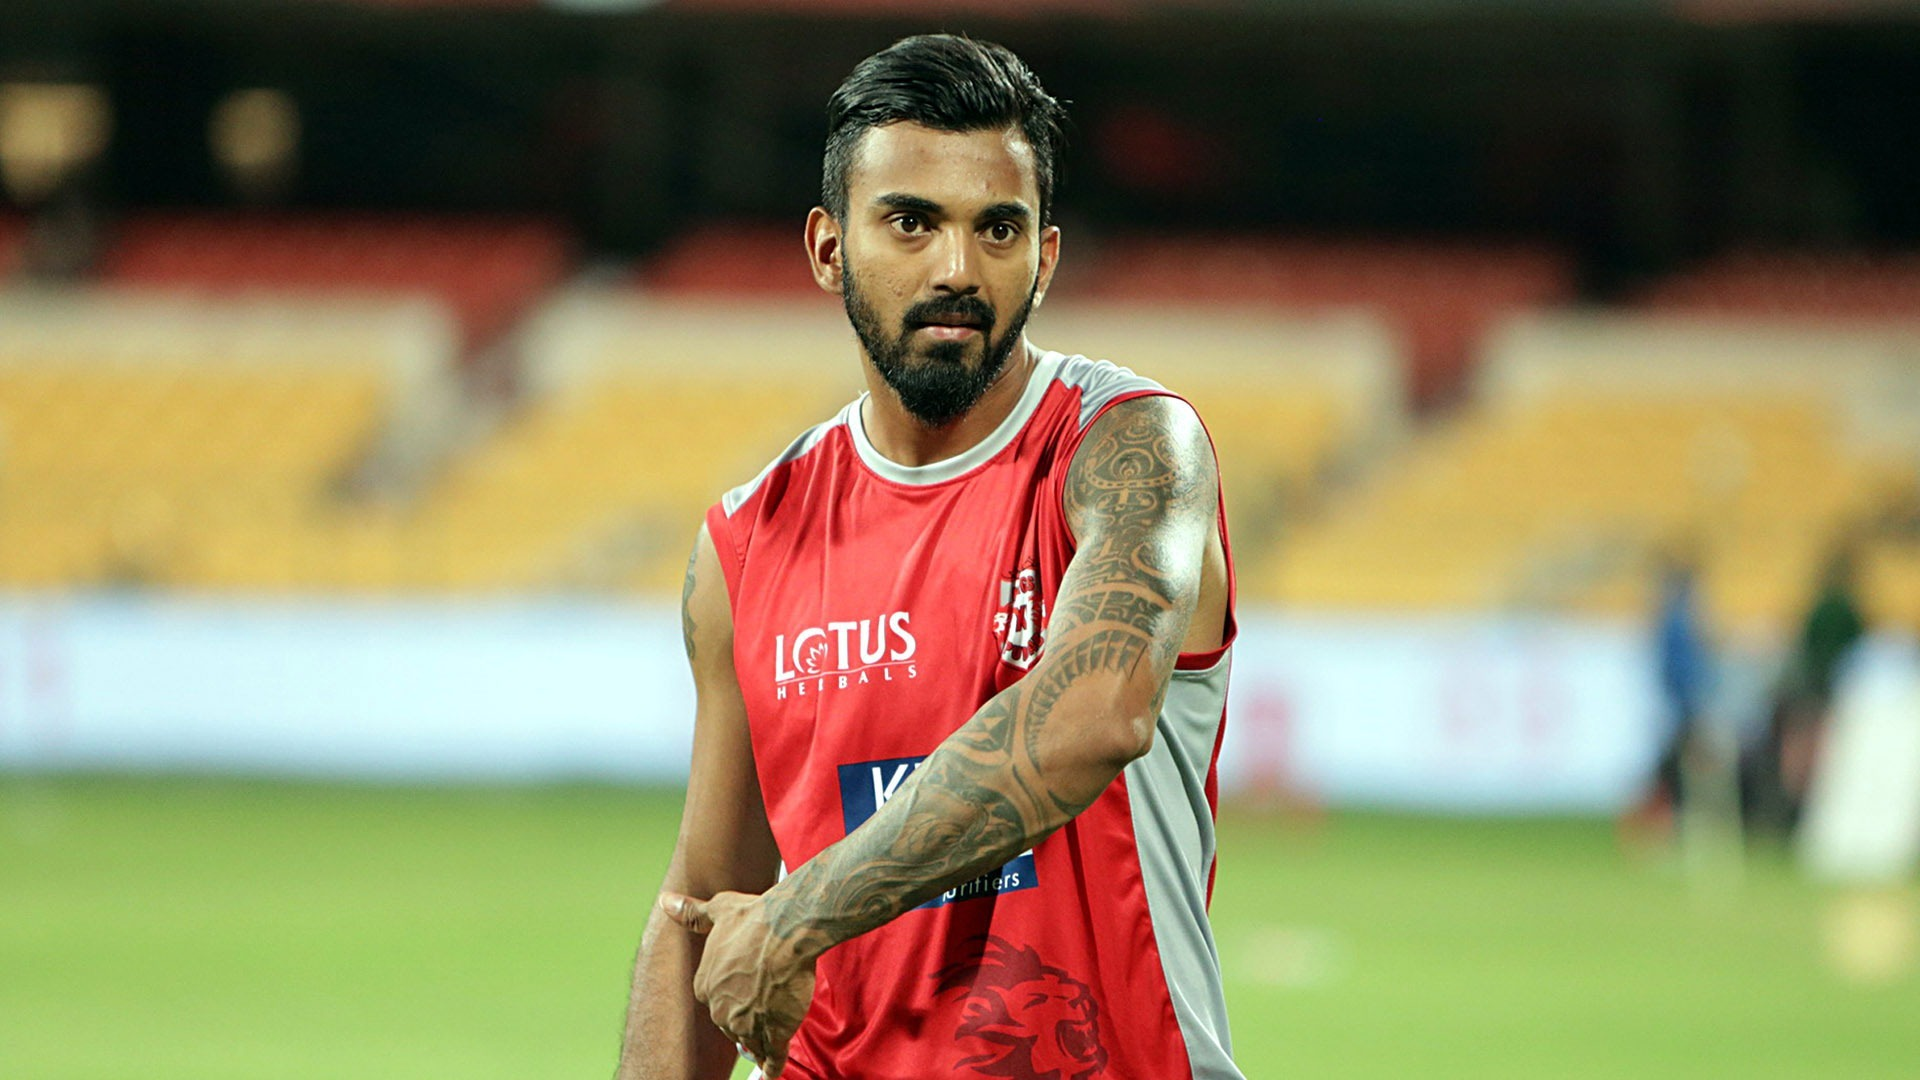 KL Rahul reacts oppositely to Preity Zinta and Sehwag on short run controversy